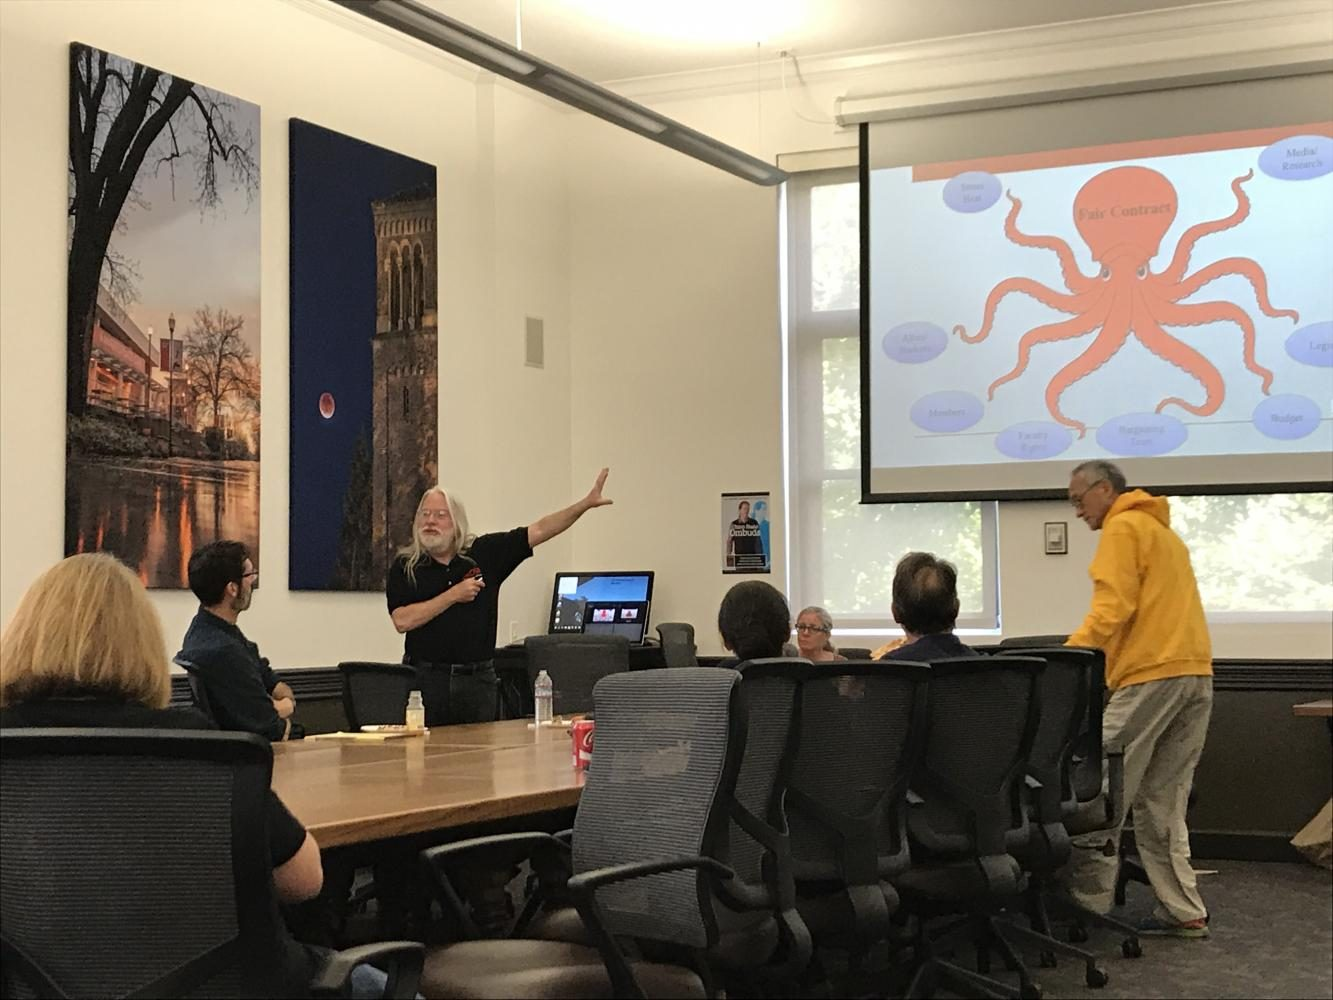 David+Bradfield+going+over+the+tentative+agreement+using+an+octopus+demonstration.+Photo+credit%3A+Hannah+Yeager